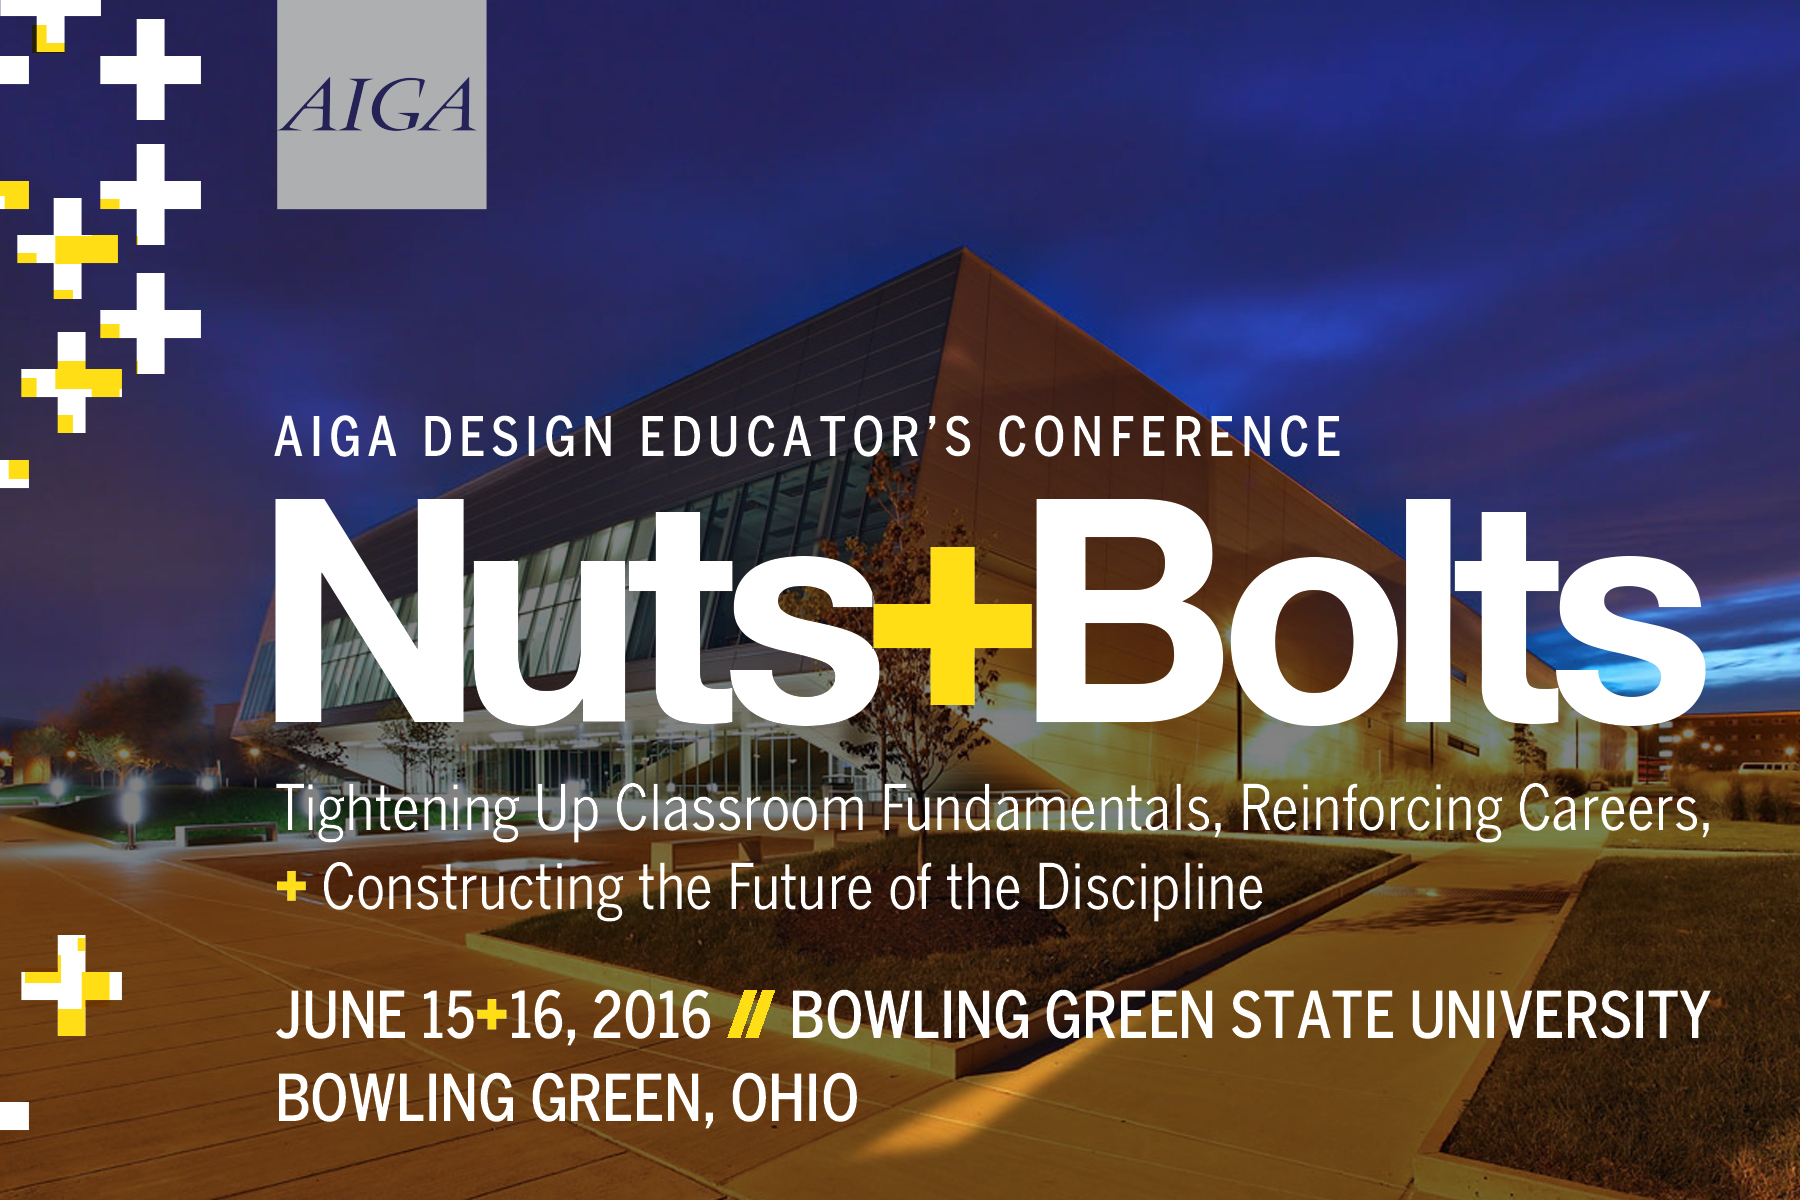 Nuts+Bolts AIGA Design Educator's Conference